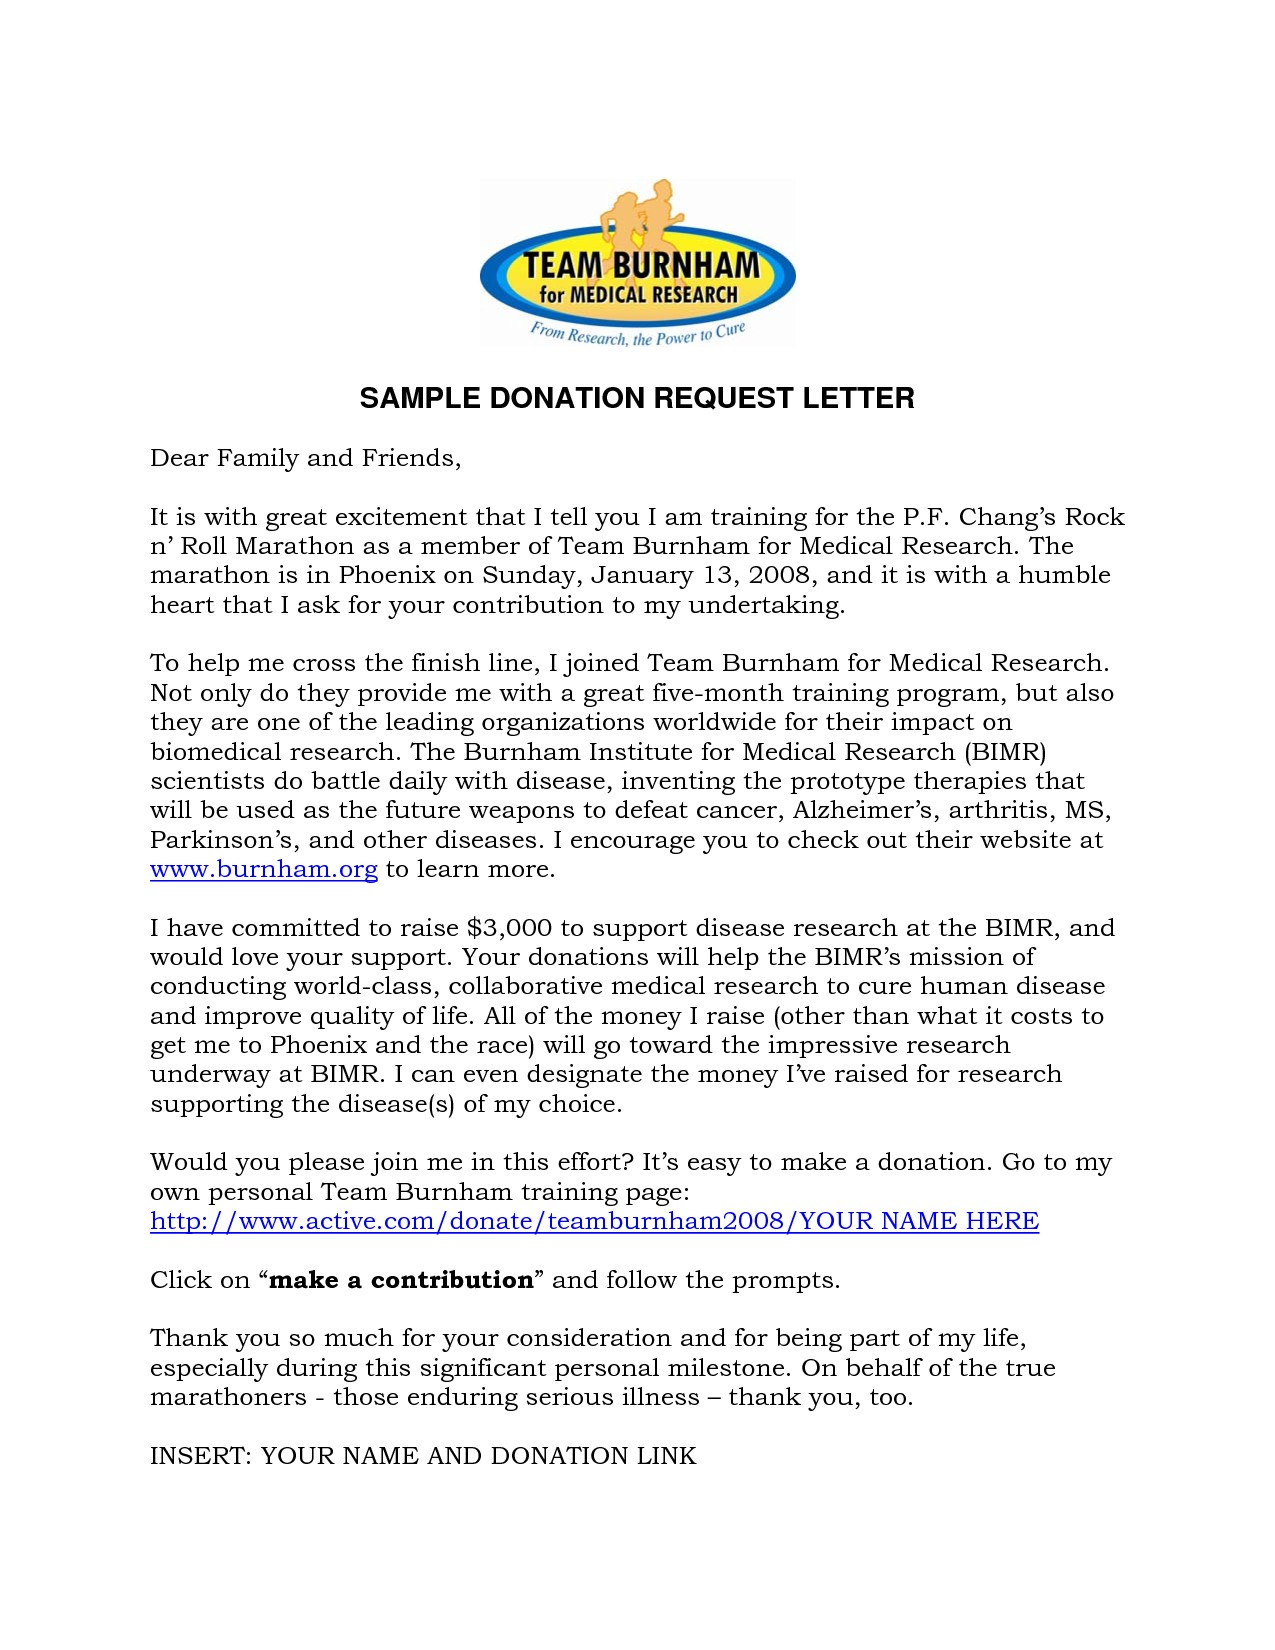 Personal Fundraising Letter Template - Sponsorship Request Letter Pdf New Sample Donation Request Letter